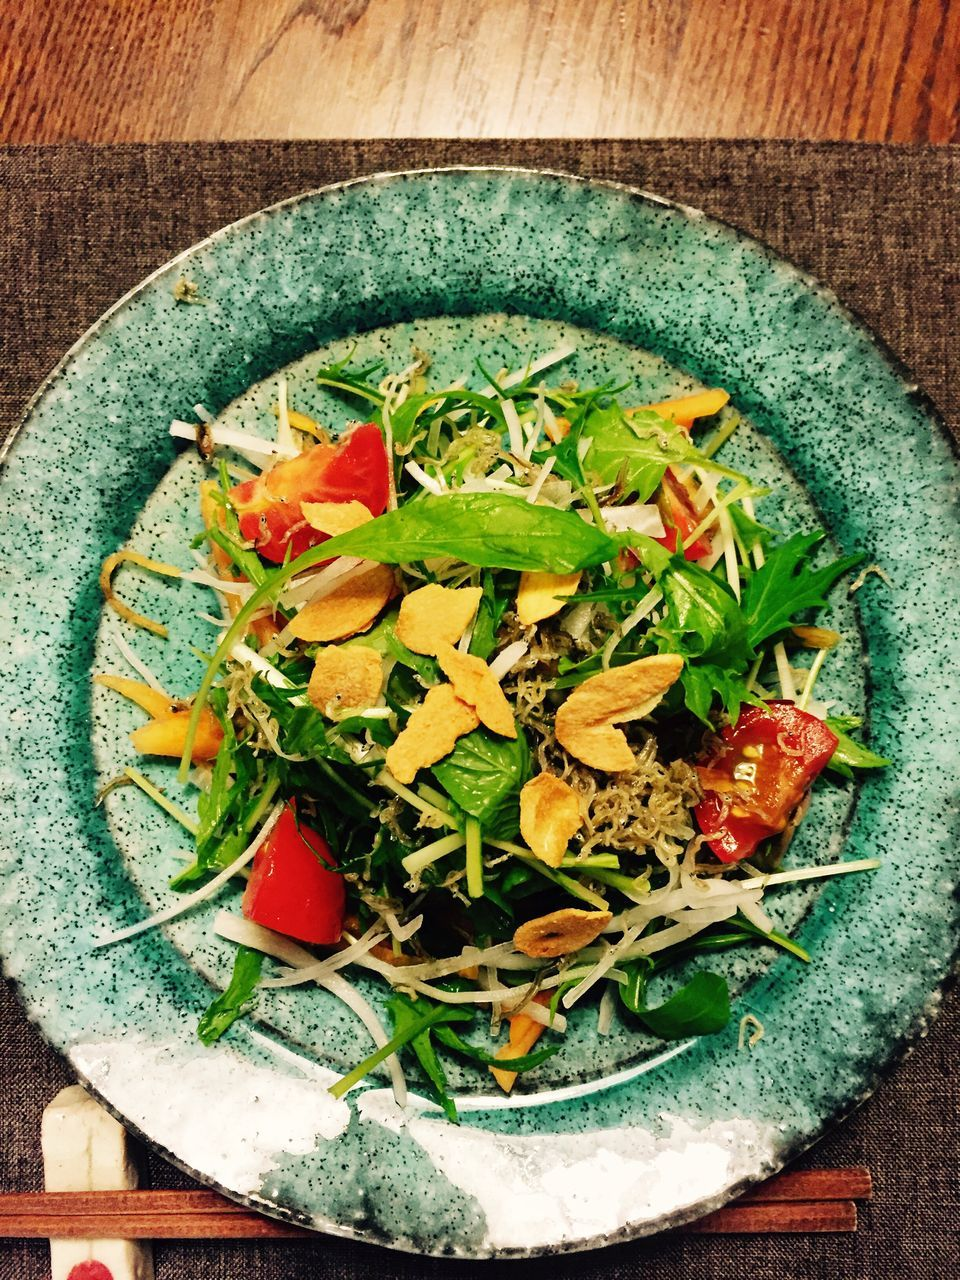 food and drink, healthy eating, freshness, food, directly above, green color, vegetable, high angle view, indoors, salad, no people, ready-to-eat, bowl, close-up, day